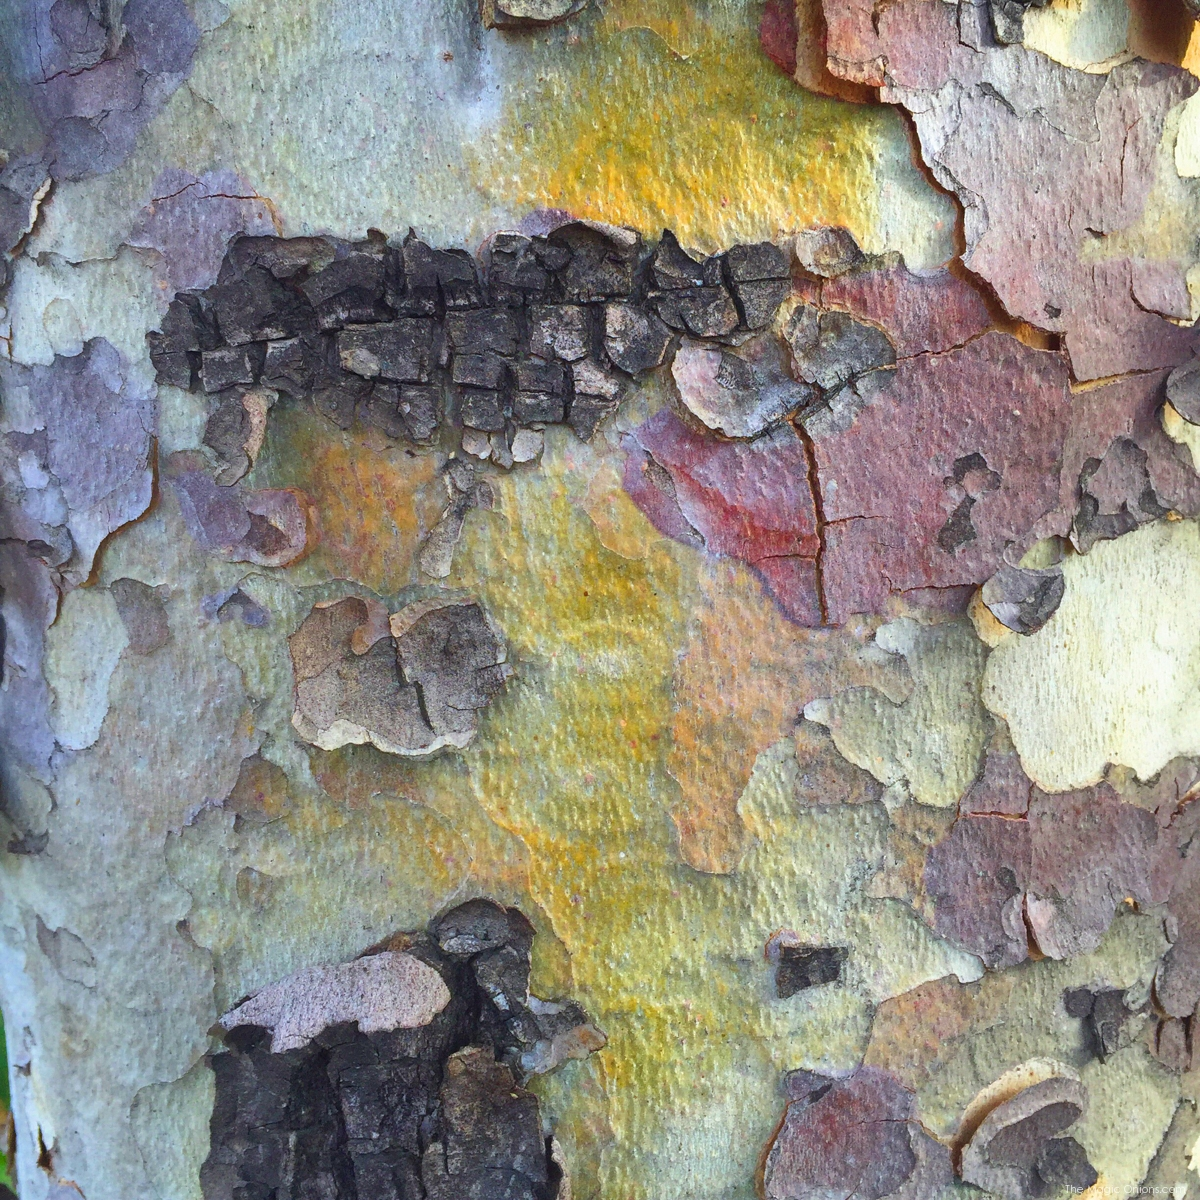 Bark :: Nature Photos -- www.theMagicOnions.com - (1 of 10)